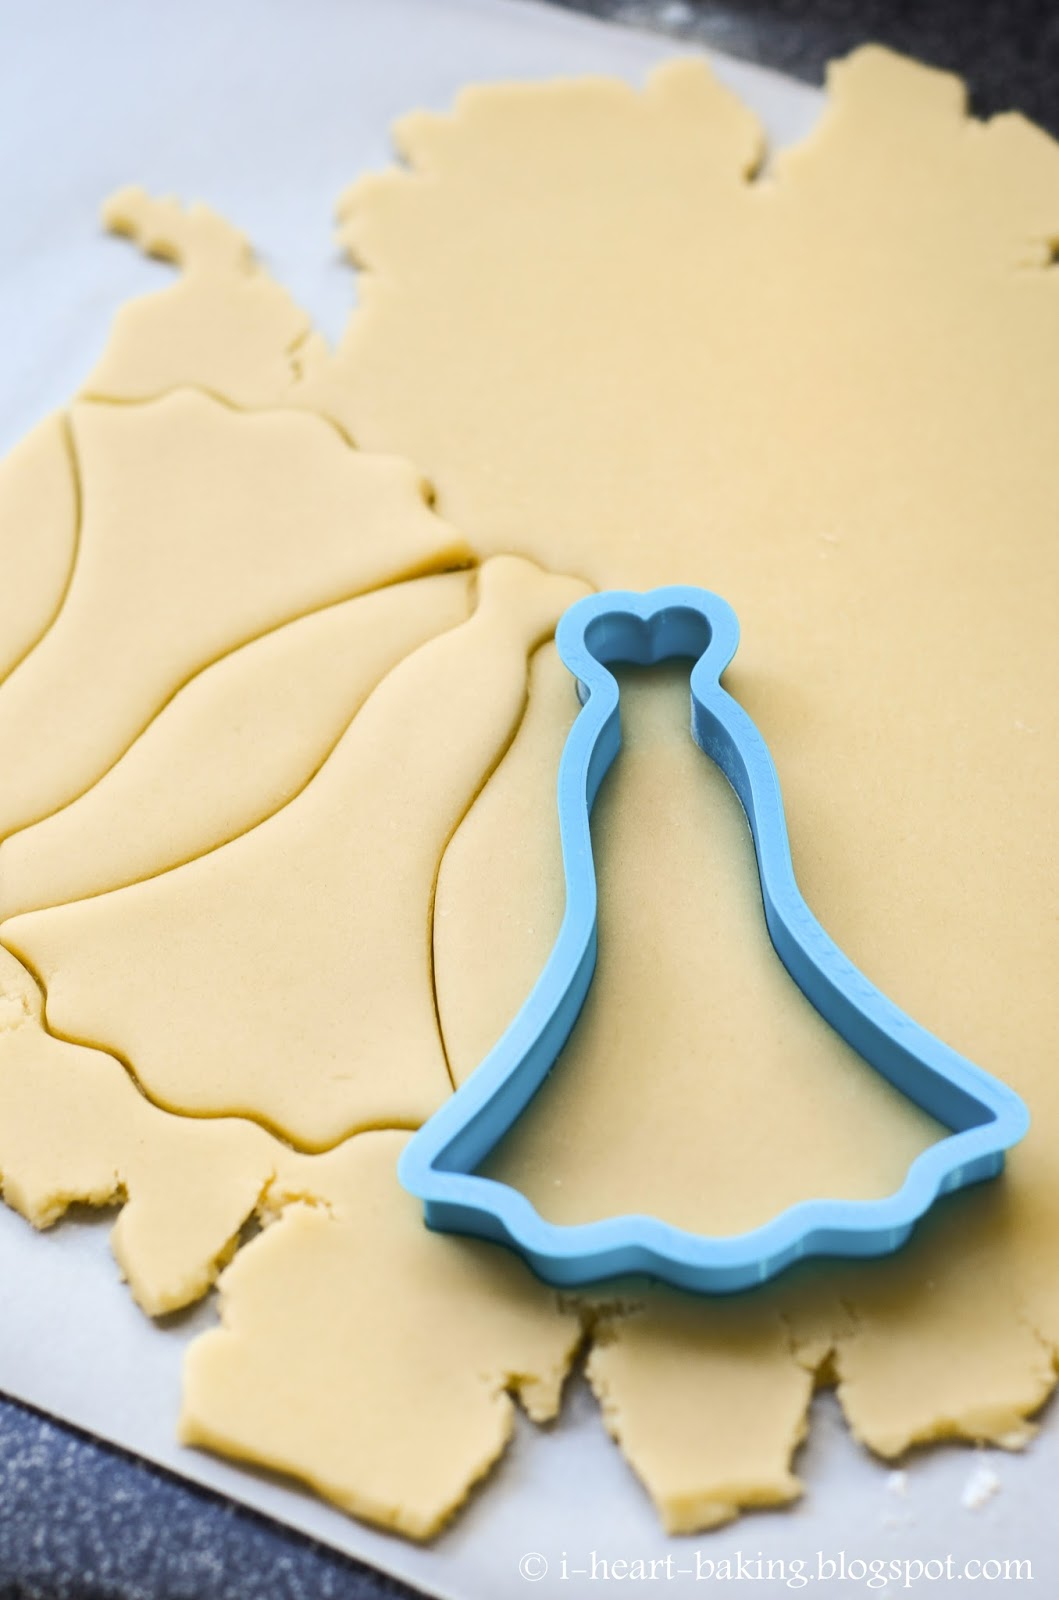 i heart baking!: wedding dress cookies with brush embroidery lace